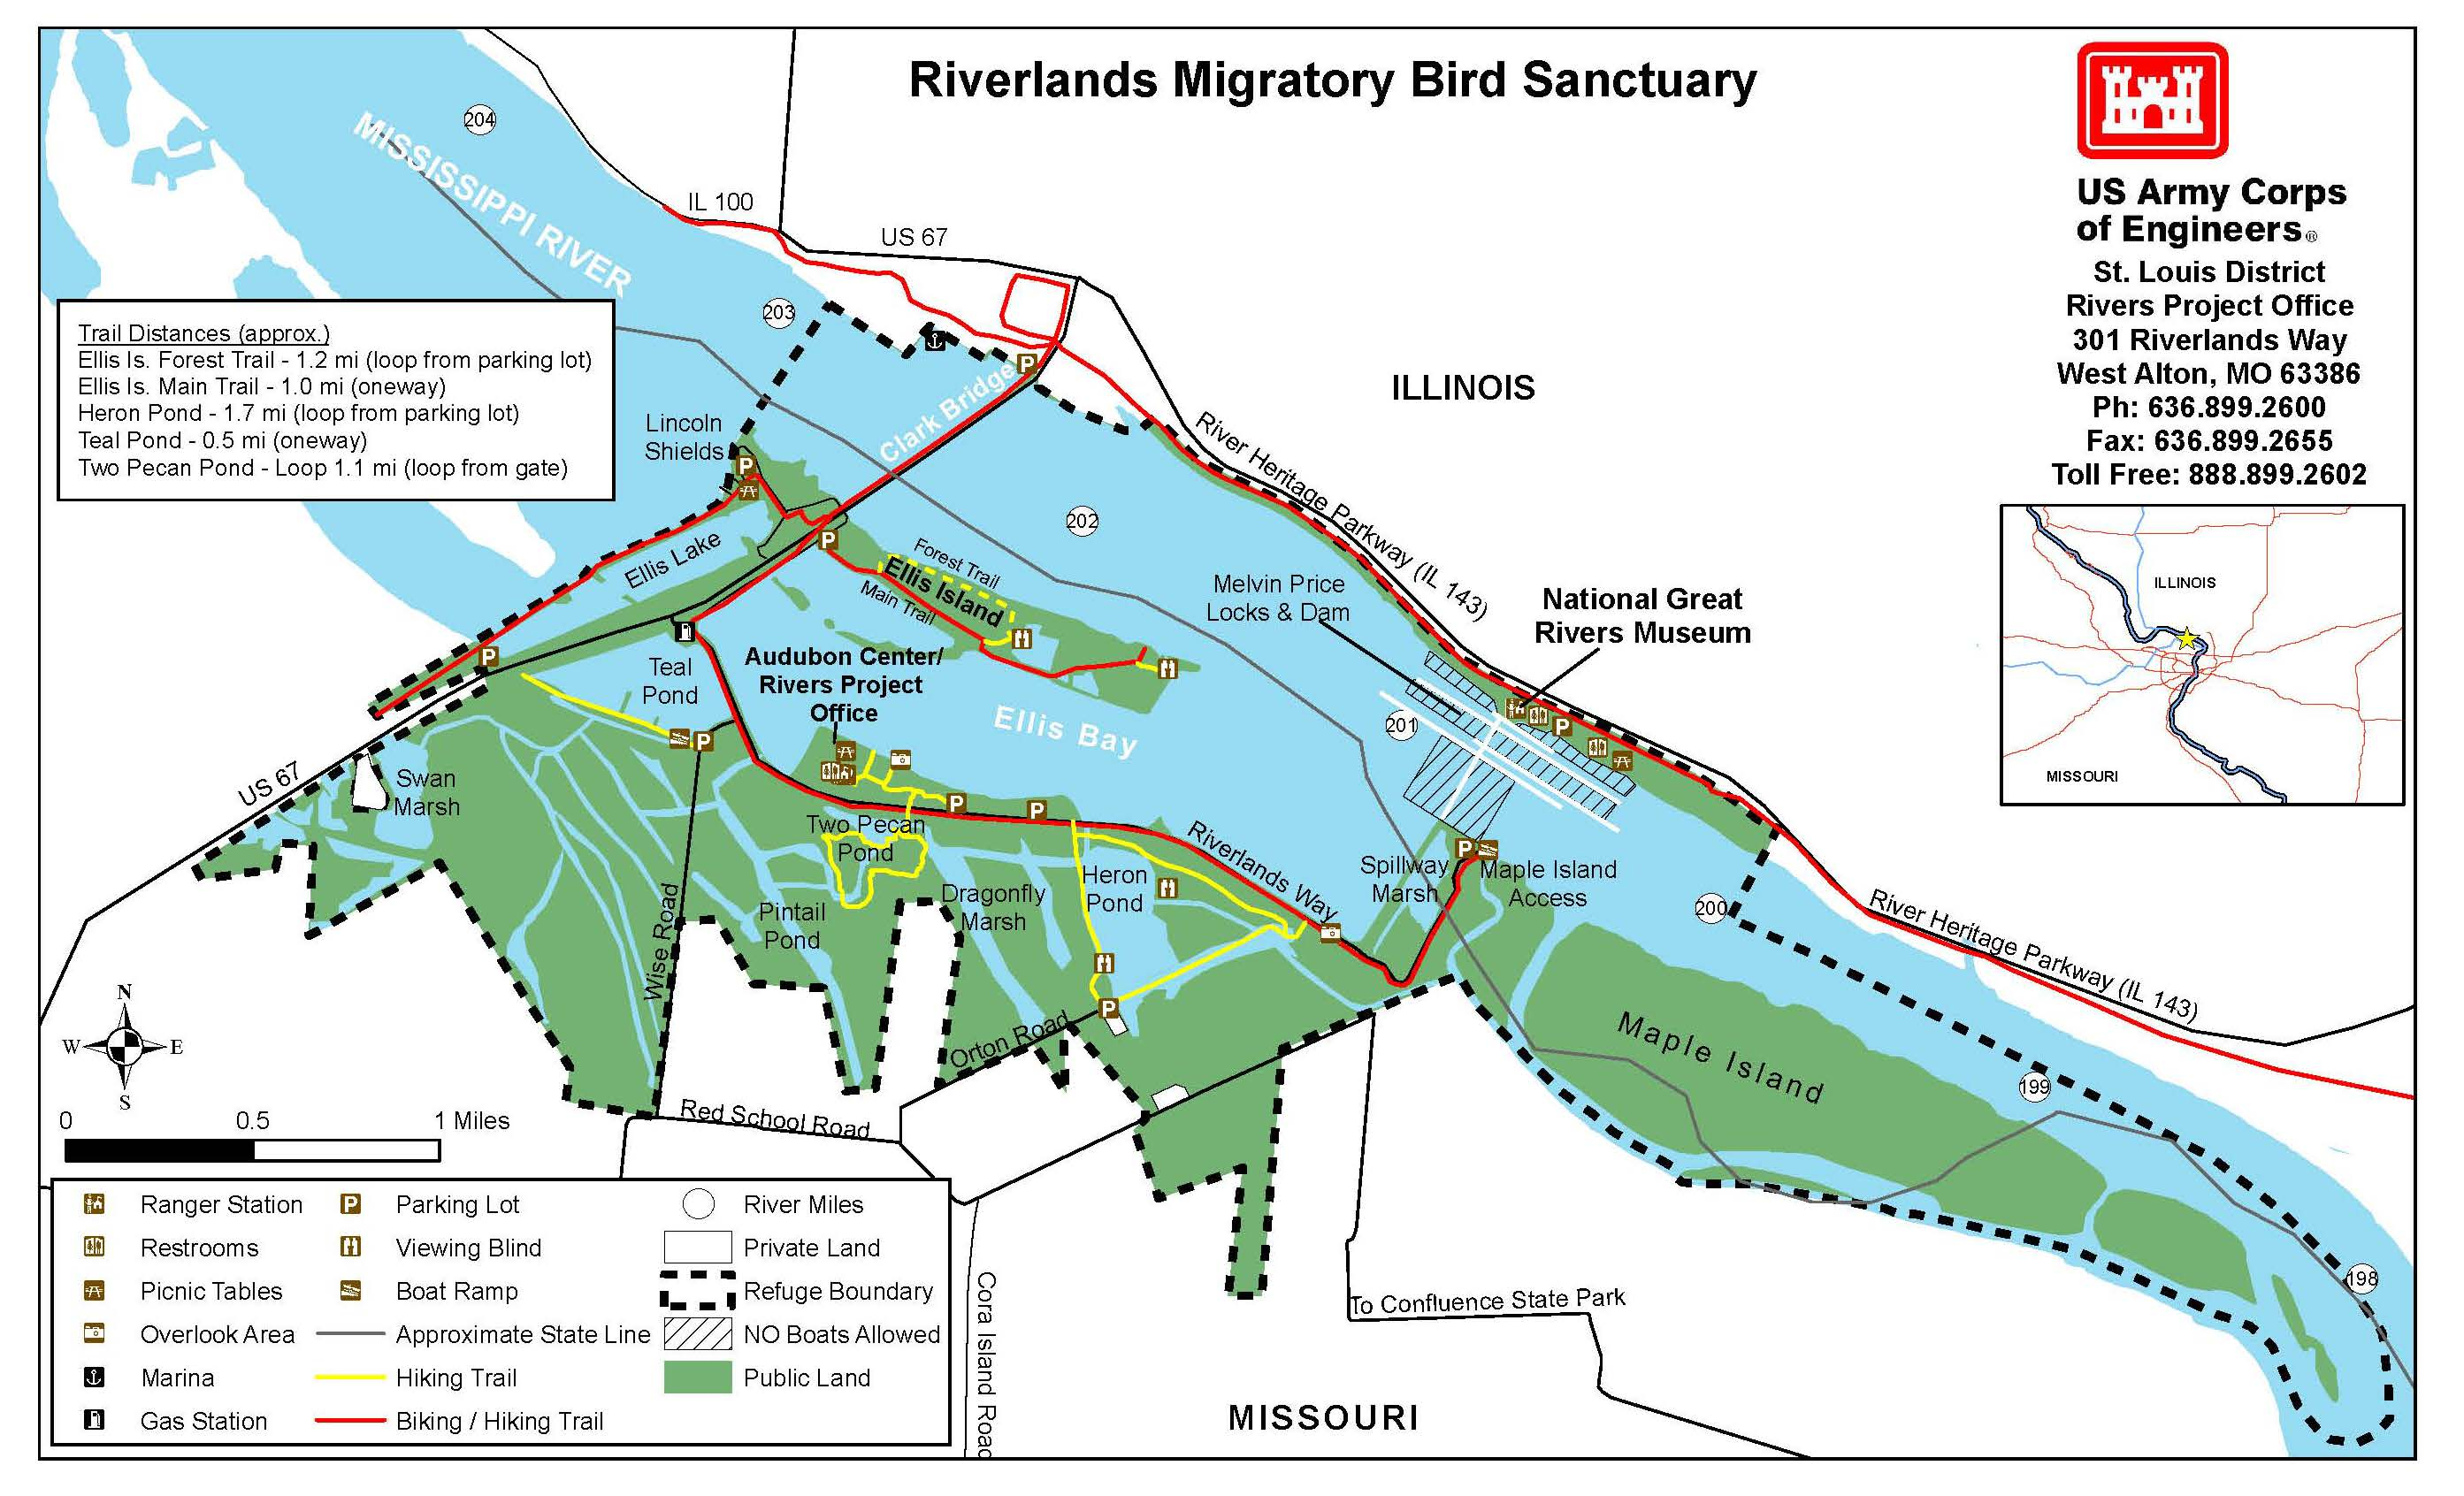 Riverlands Migratory Bird Sanctuary Map